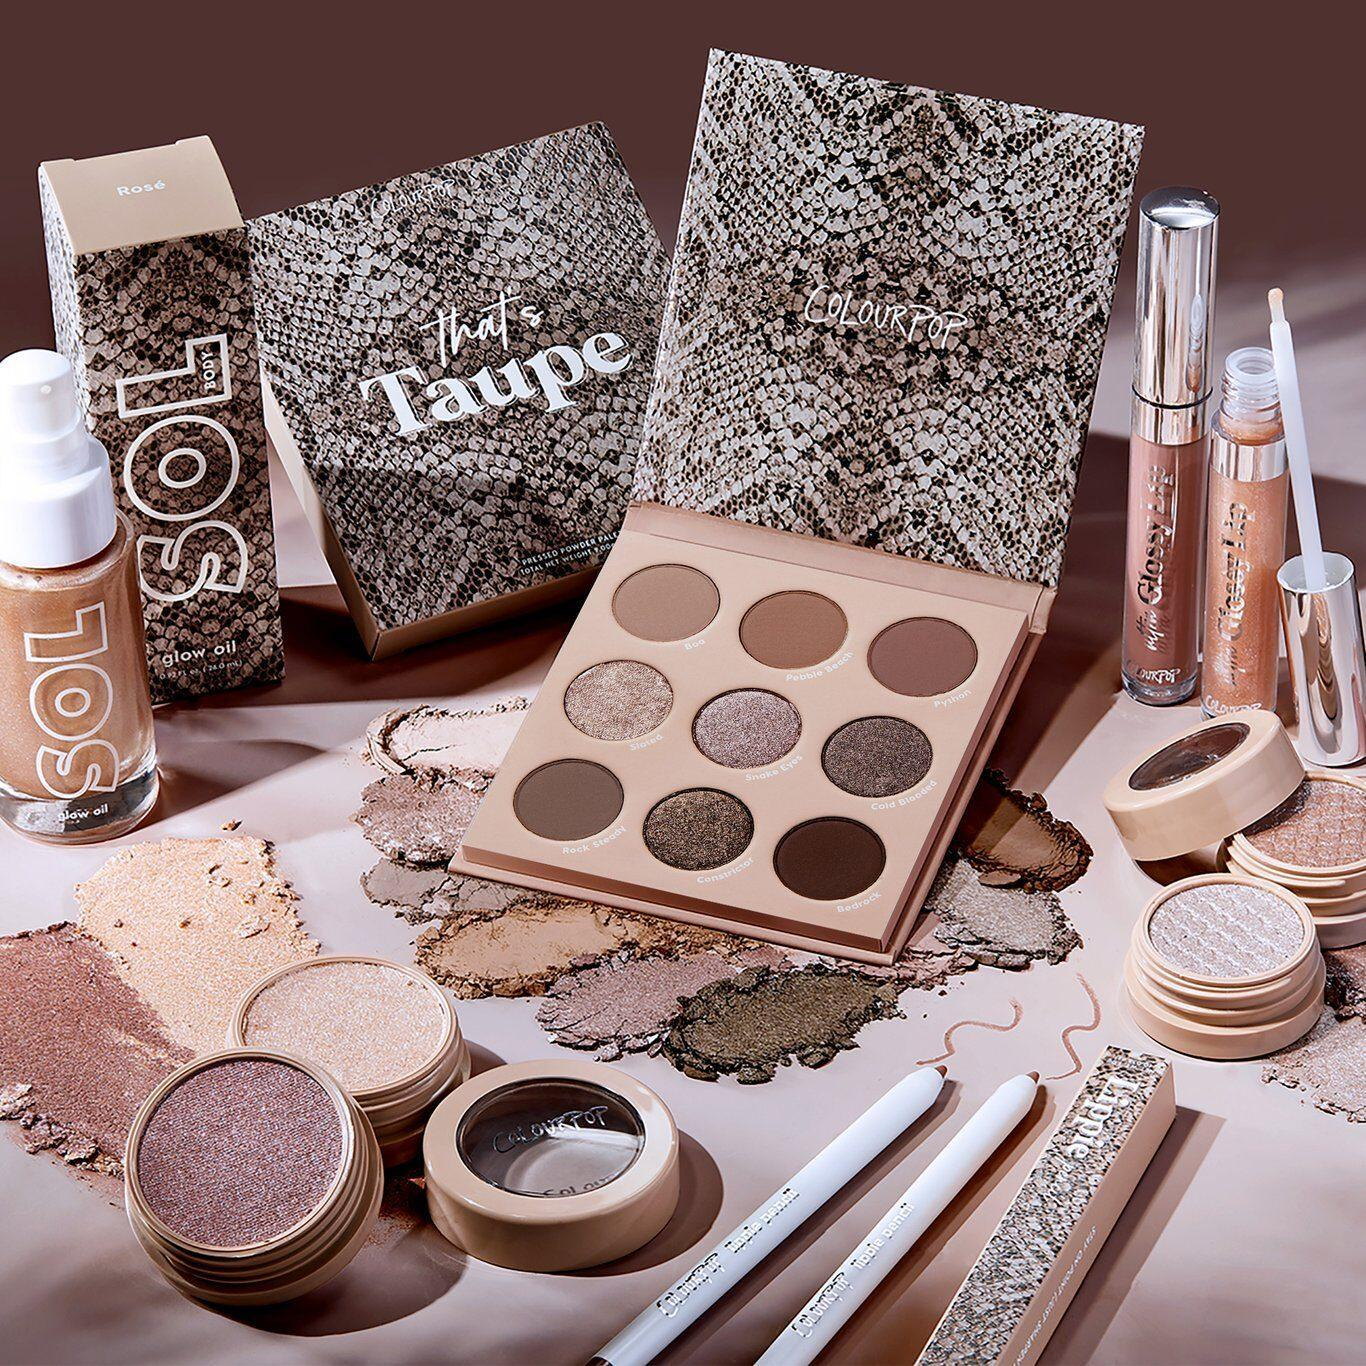 Colourpop That's Taupe Collection Promo Post Cover